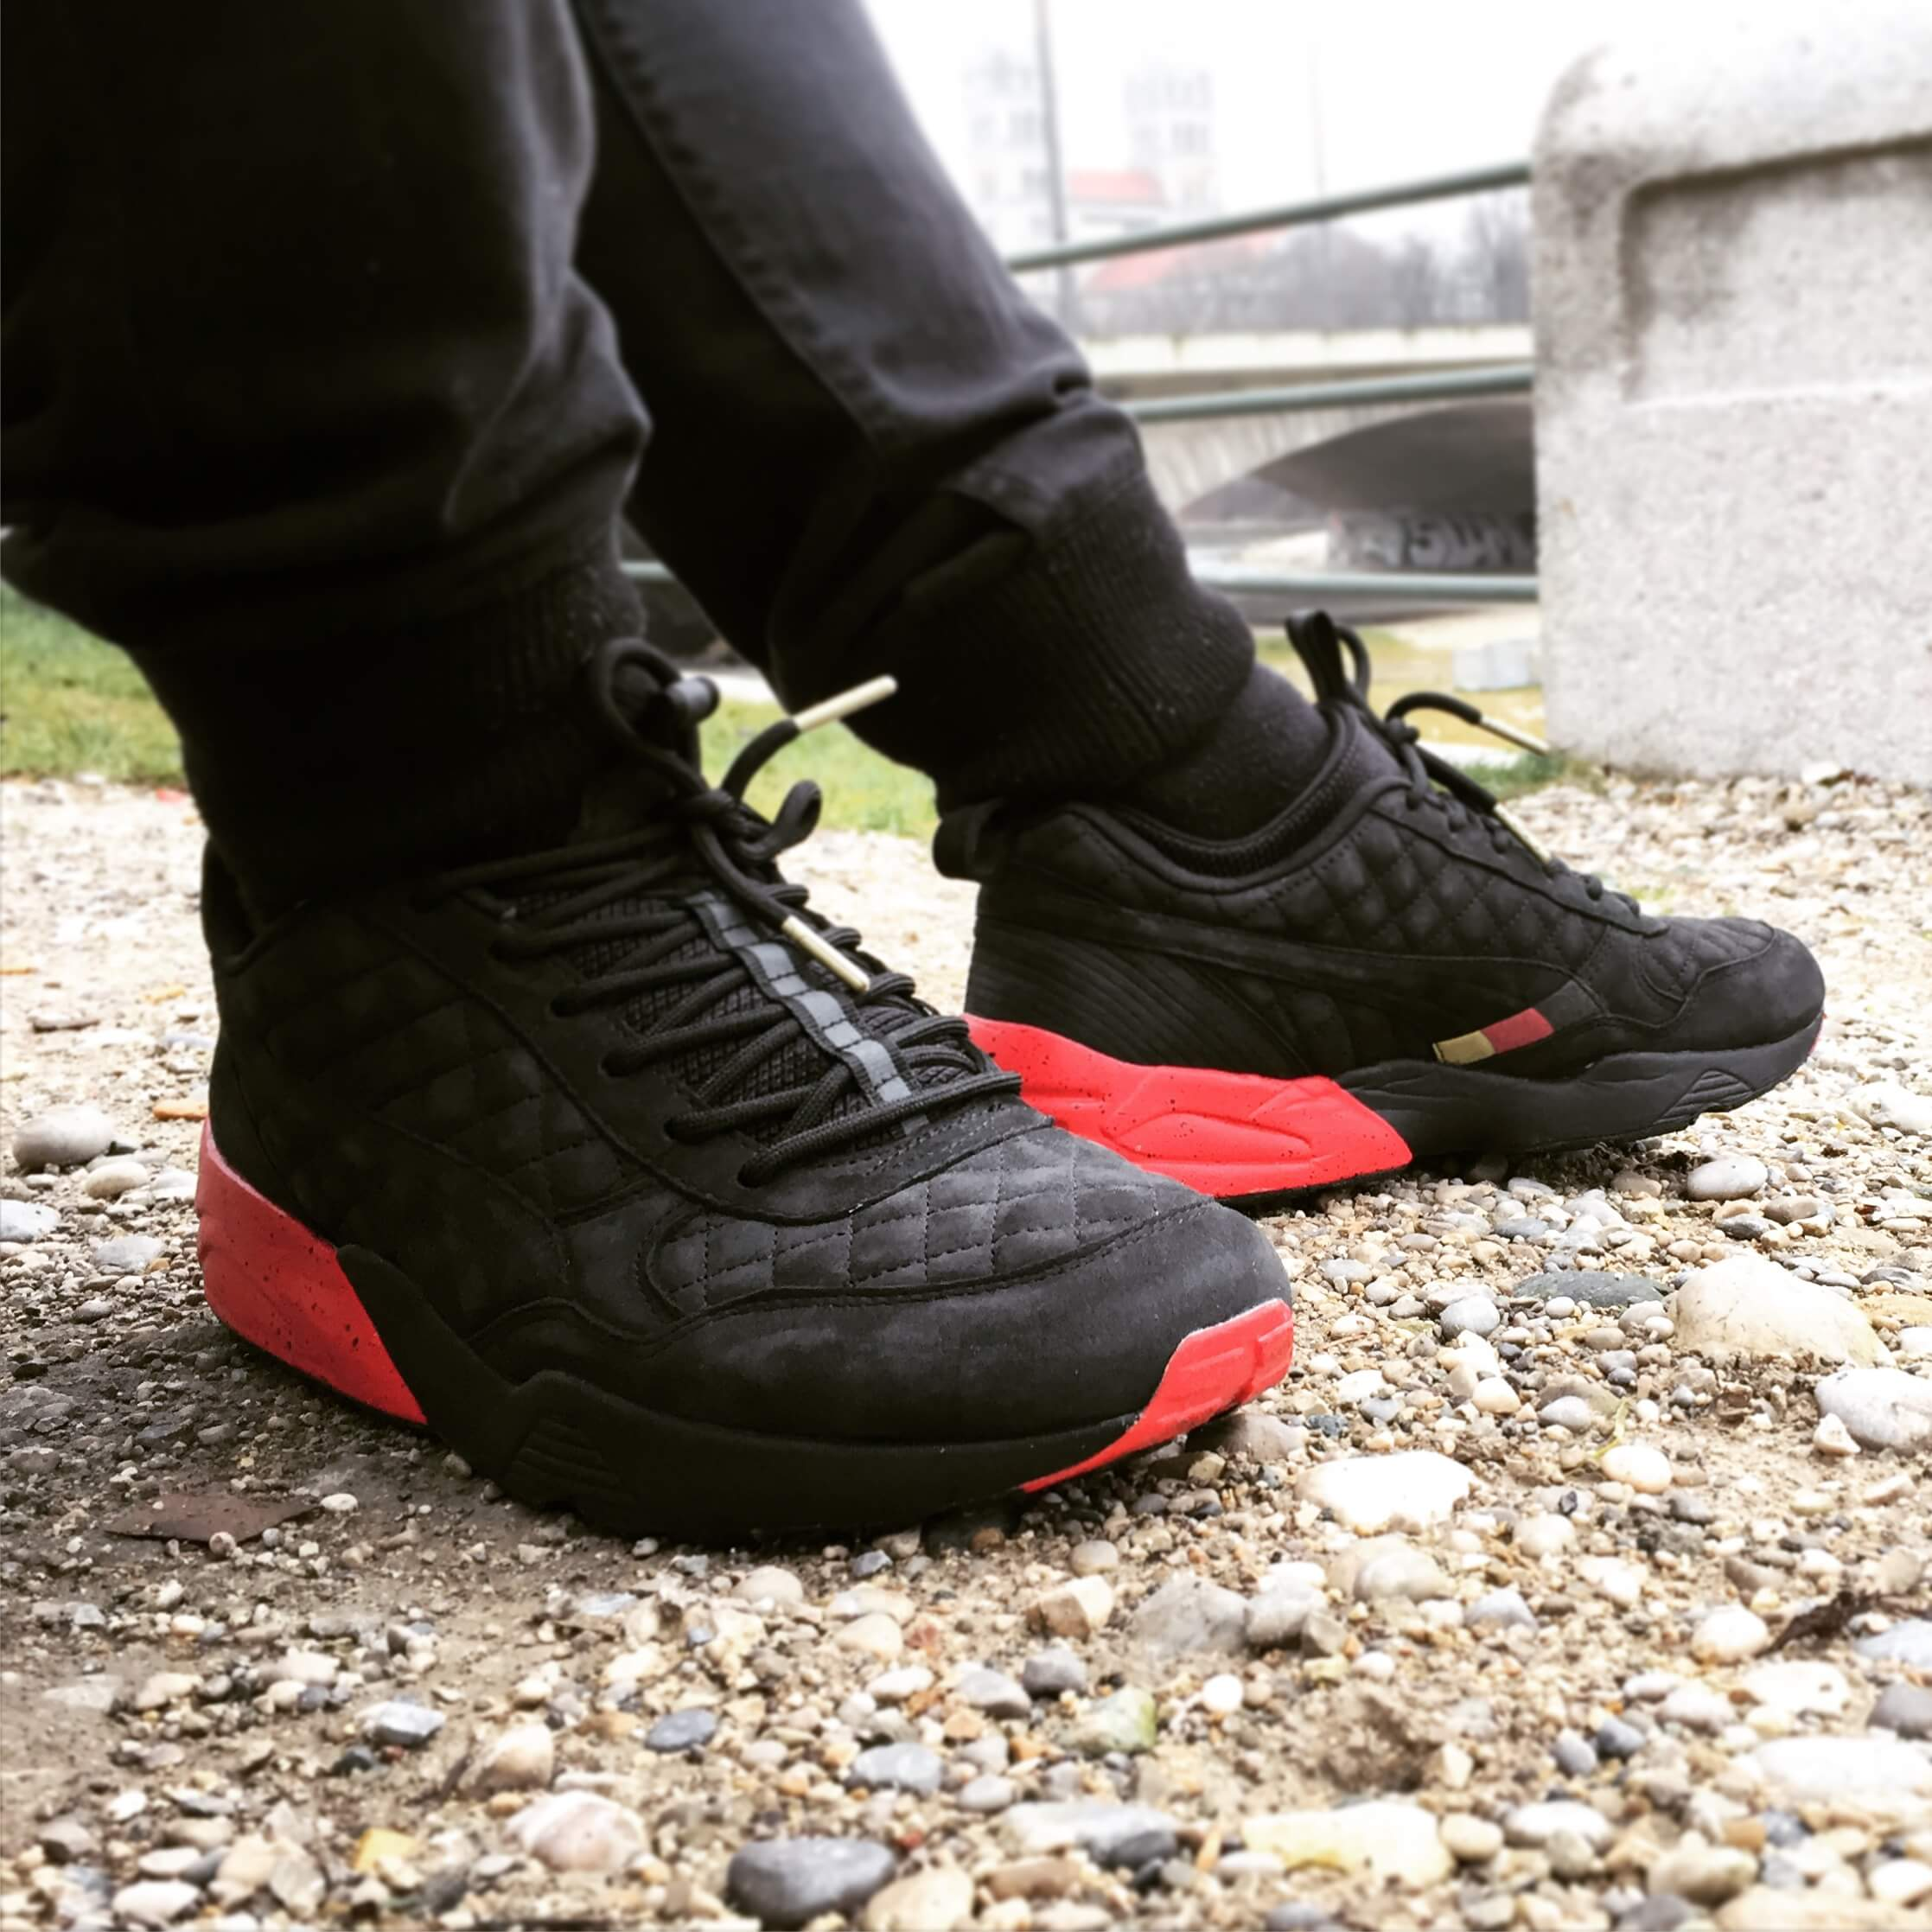 Puma-RF698-x-KITH-x-Highsnobiety-Tale-of-2-Cities-Berlin-Side-View-Benstah